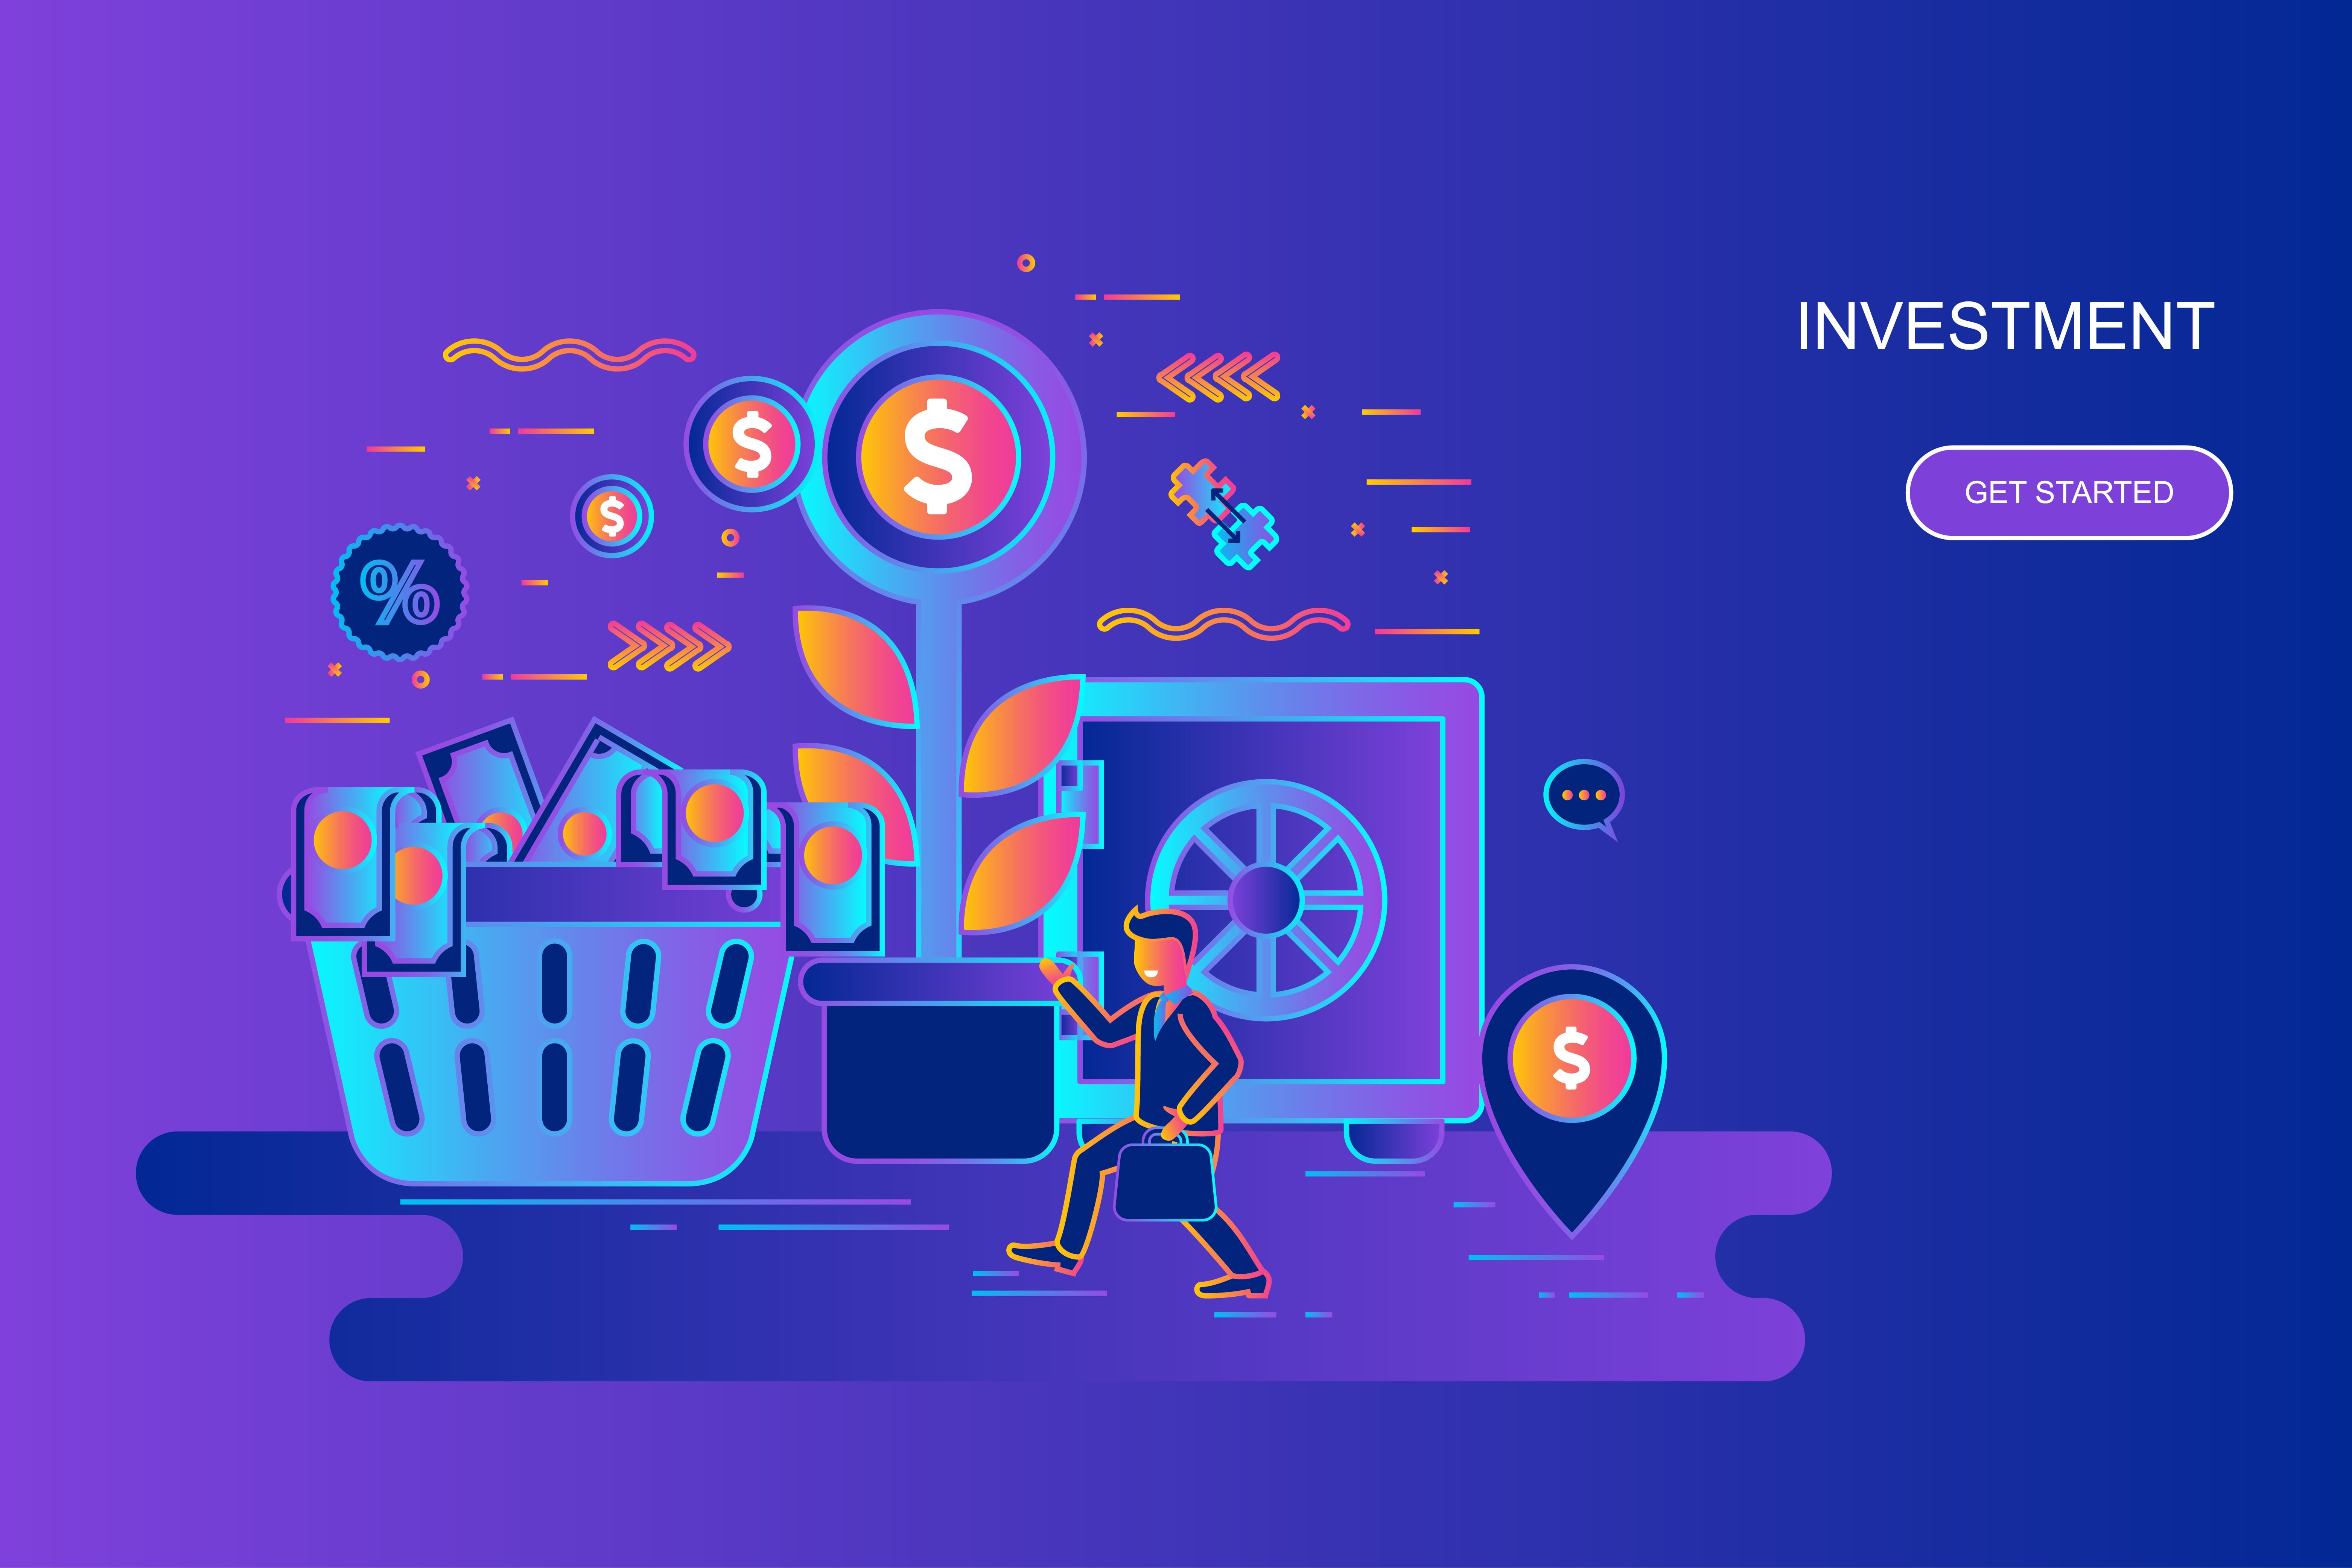 Modern gradient flat line concept web banner of investment and growth economy with decorated small people character. Landing page template. Conceptual vector illustration for web, graphic design.